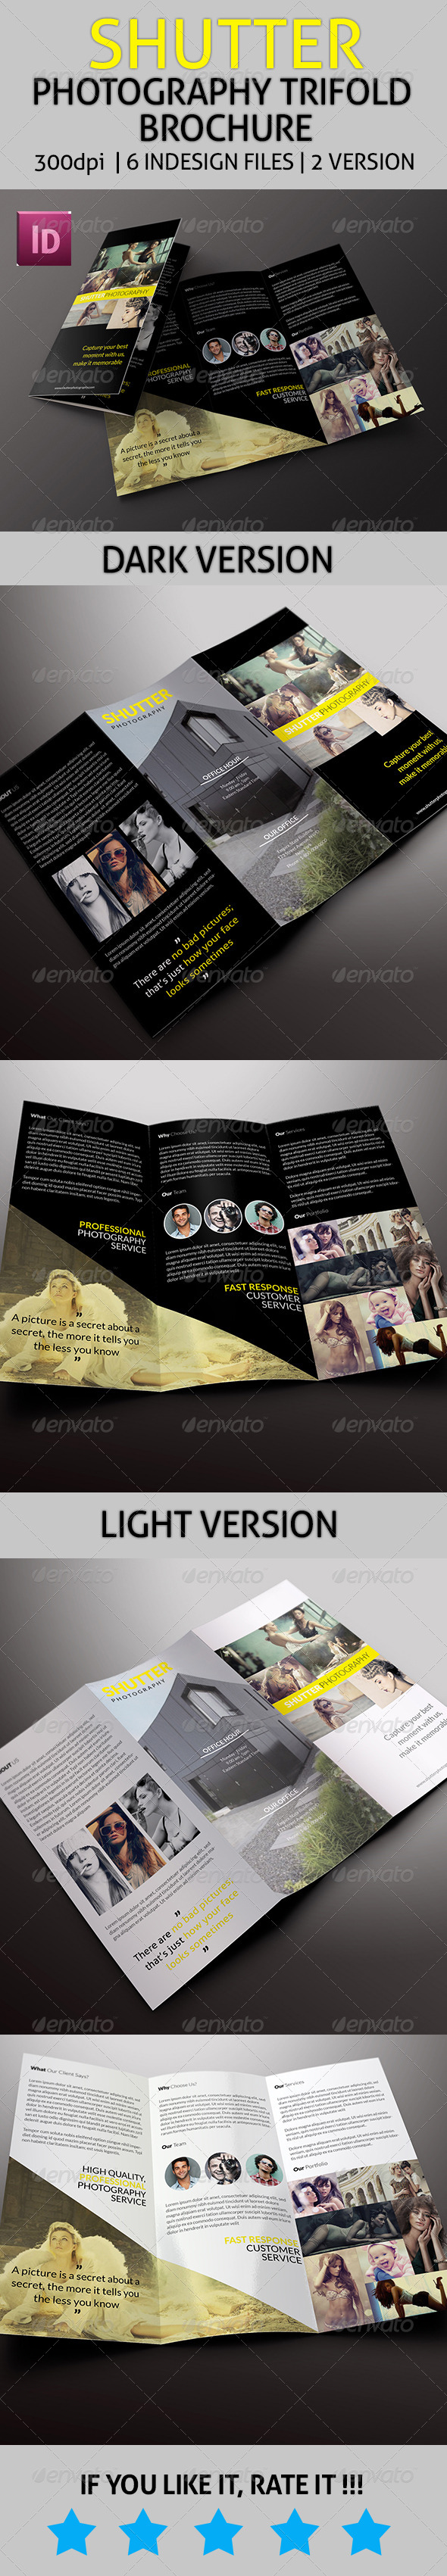 GraphicRiver Shutter Photography Trifold Brochure 7846761